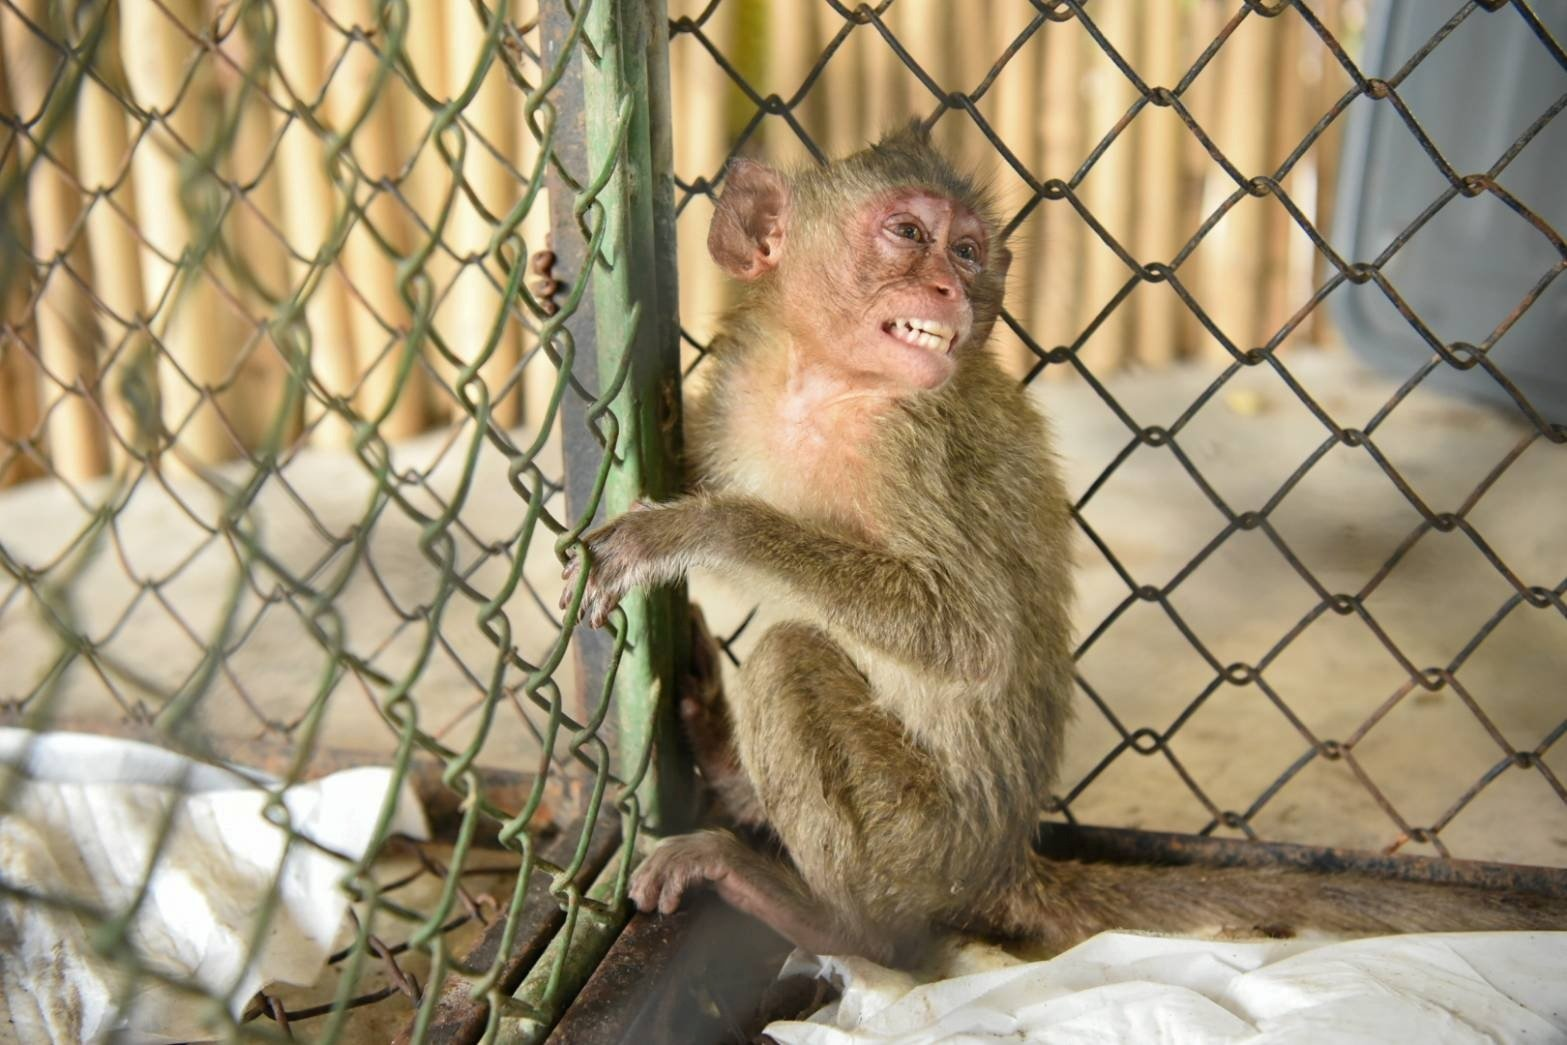 One of the wild monkeys rescued from a truck during a smuggling attempt sits in a cage at the animal field hospital in Nakhon Nayok, Thailand, May 28, 2021. (Thai Department of Natural Parks, Wildlife and Plant Conservation/Handout via REUTERS)